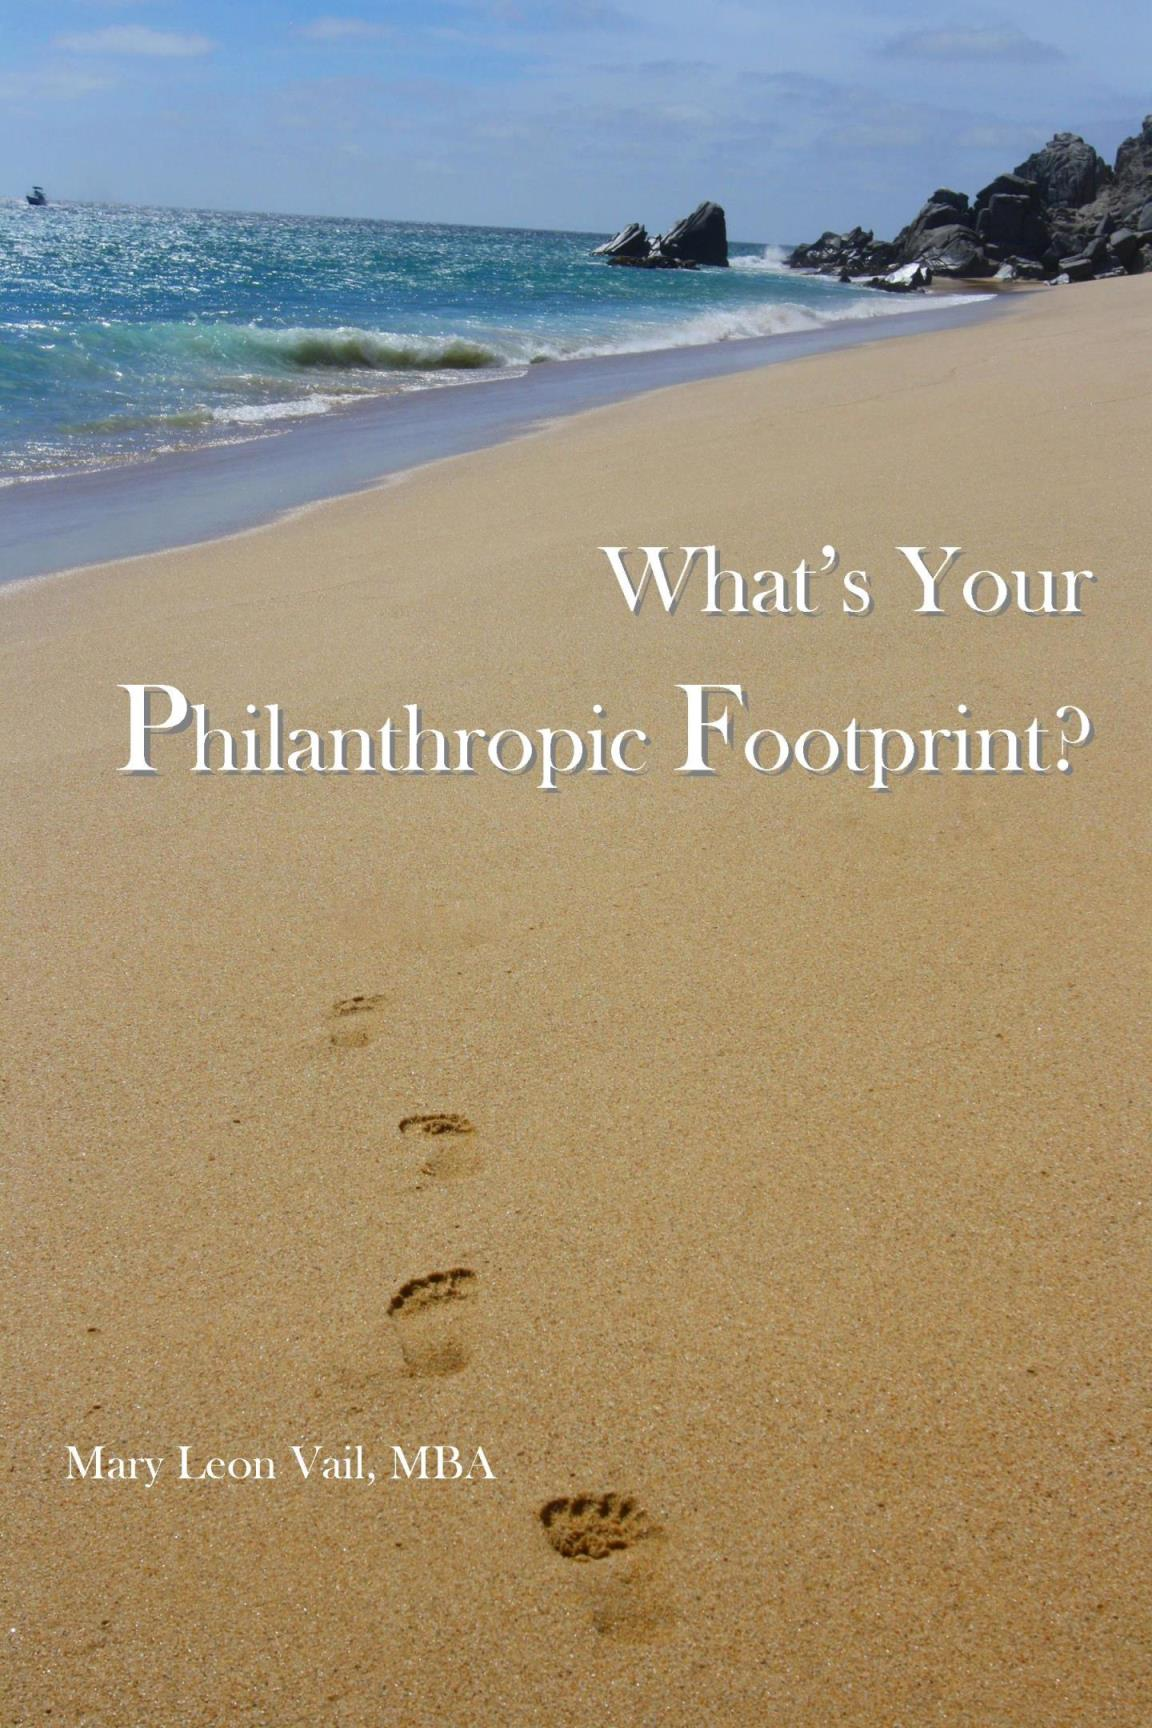 What's Your Philanthropic Footprint? a guide to community activism.